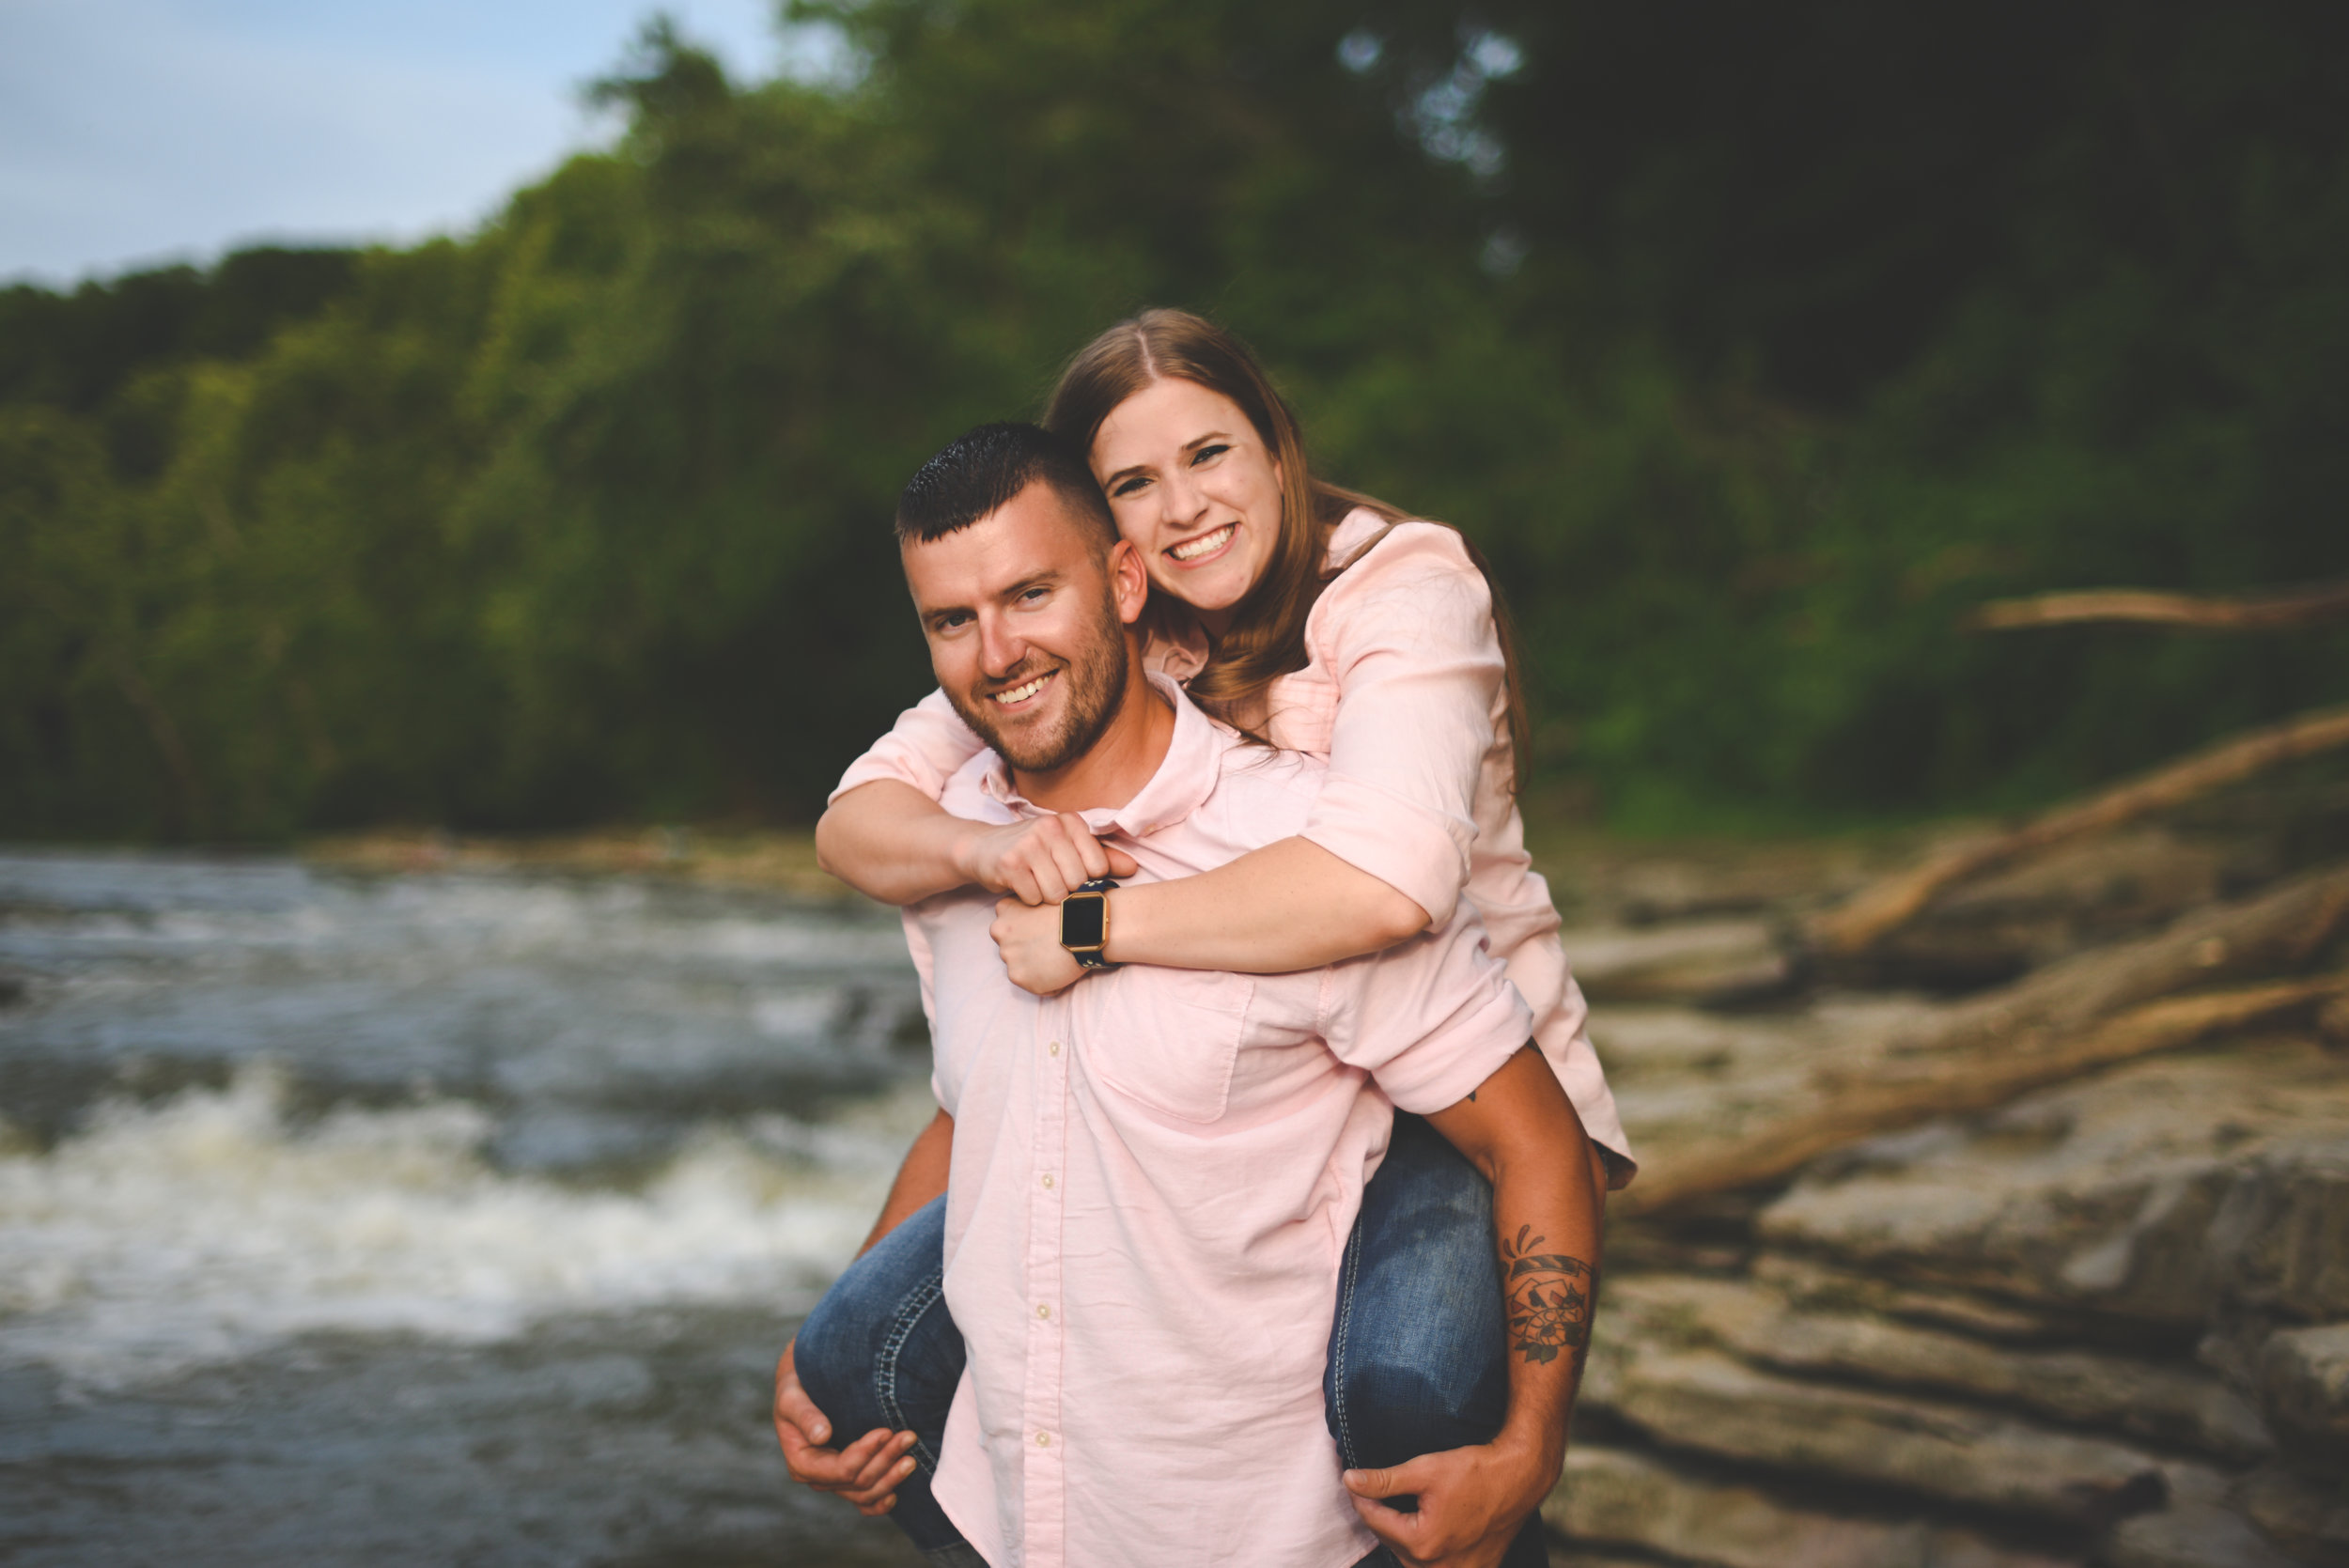 Indianapolis engagement photography - Kendra and Caleb